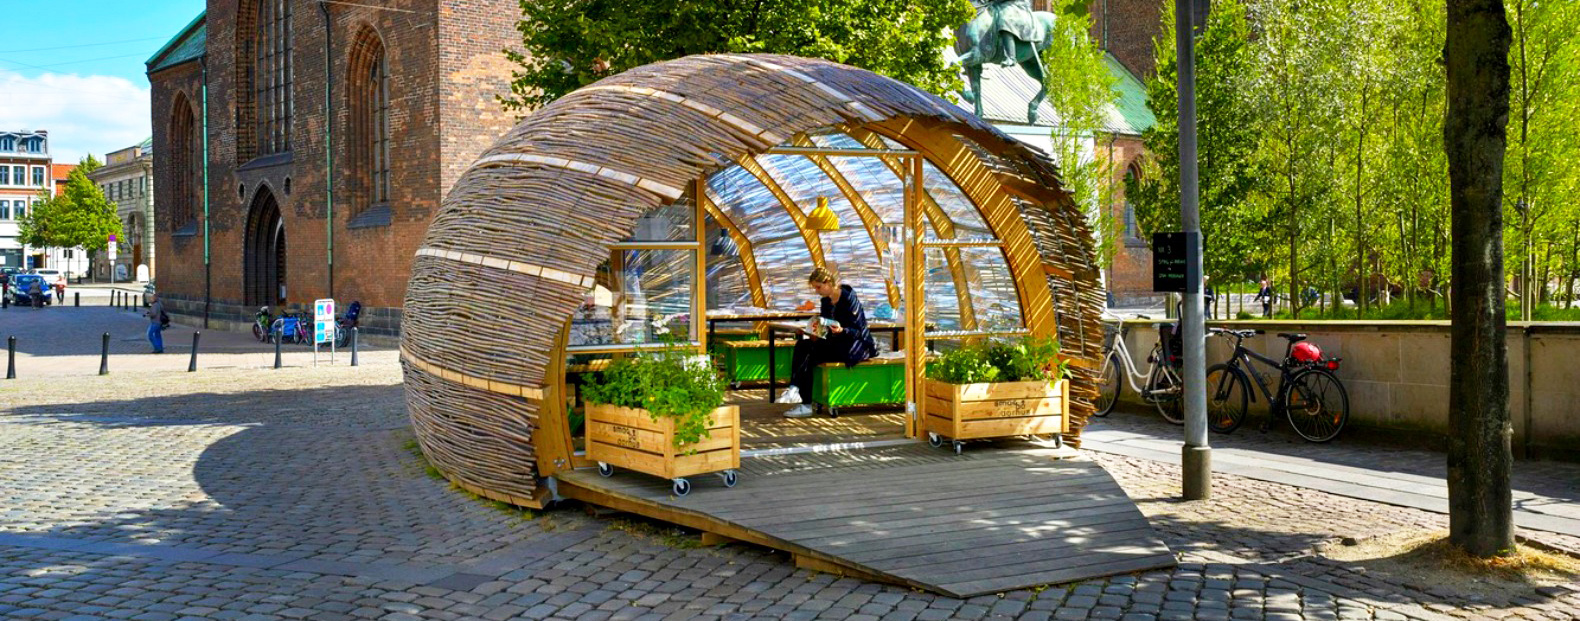 Urban space inhabitat green design innovation architecture green building - Small urban spaces image ...